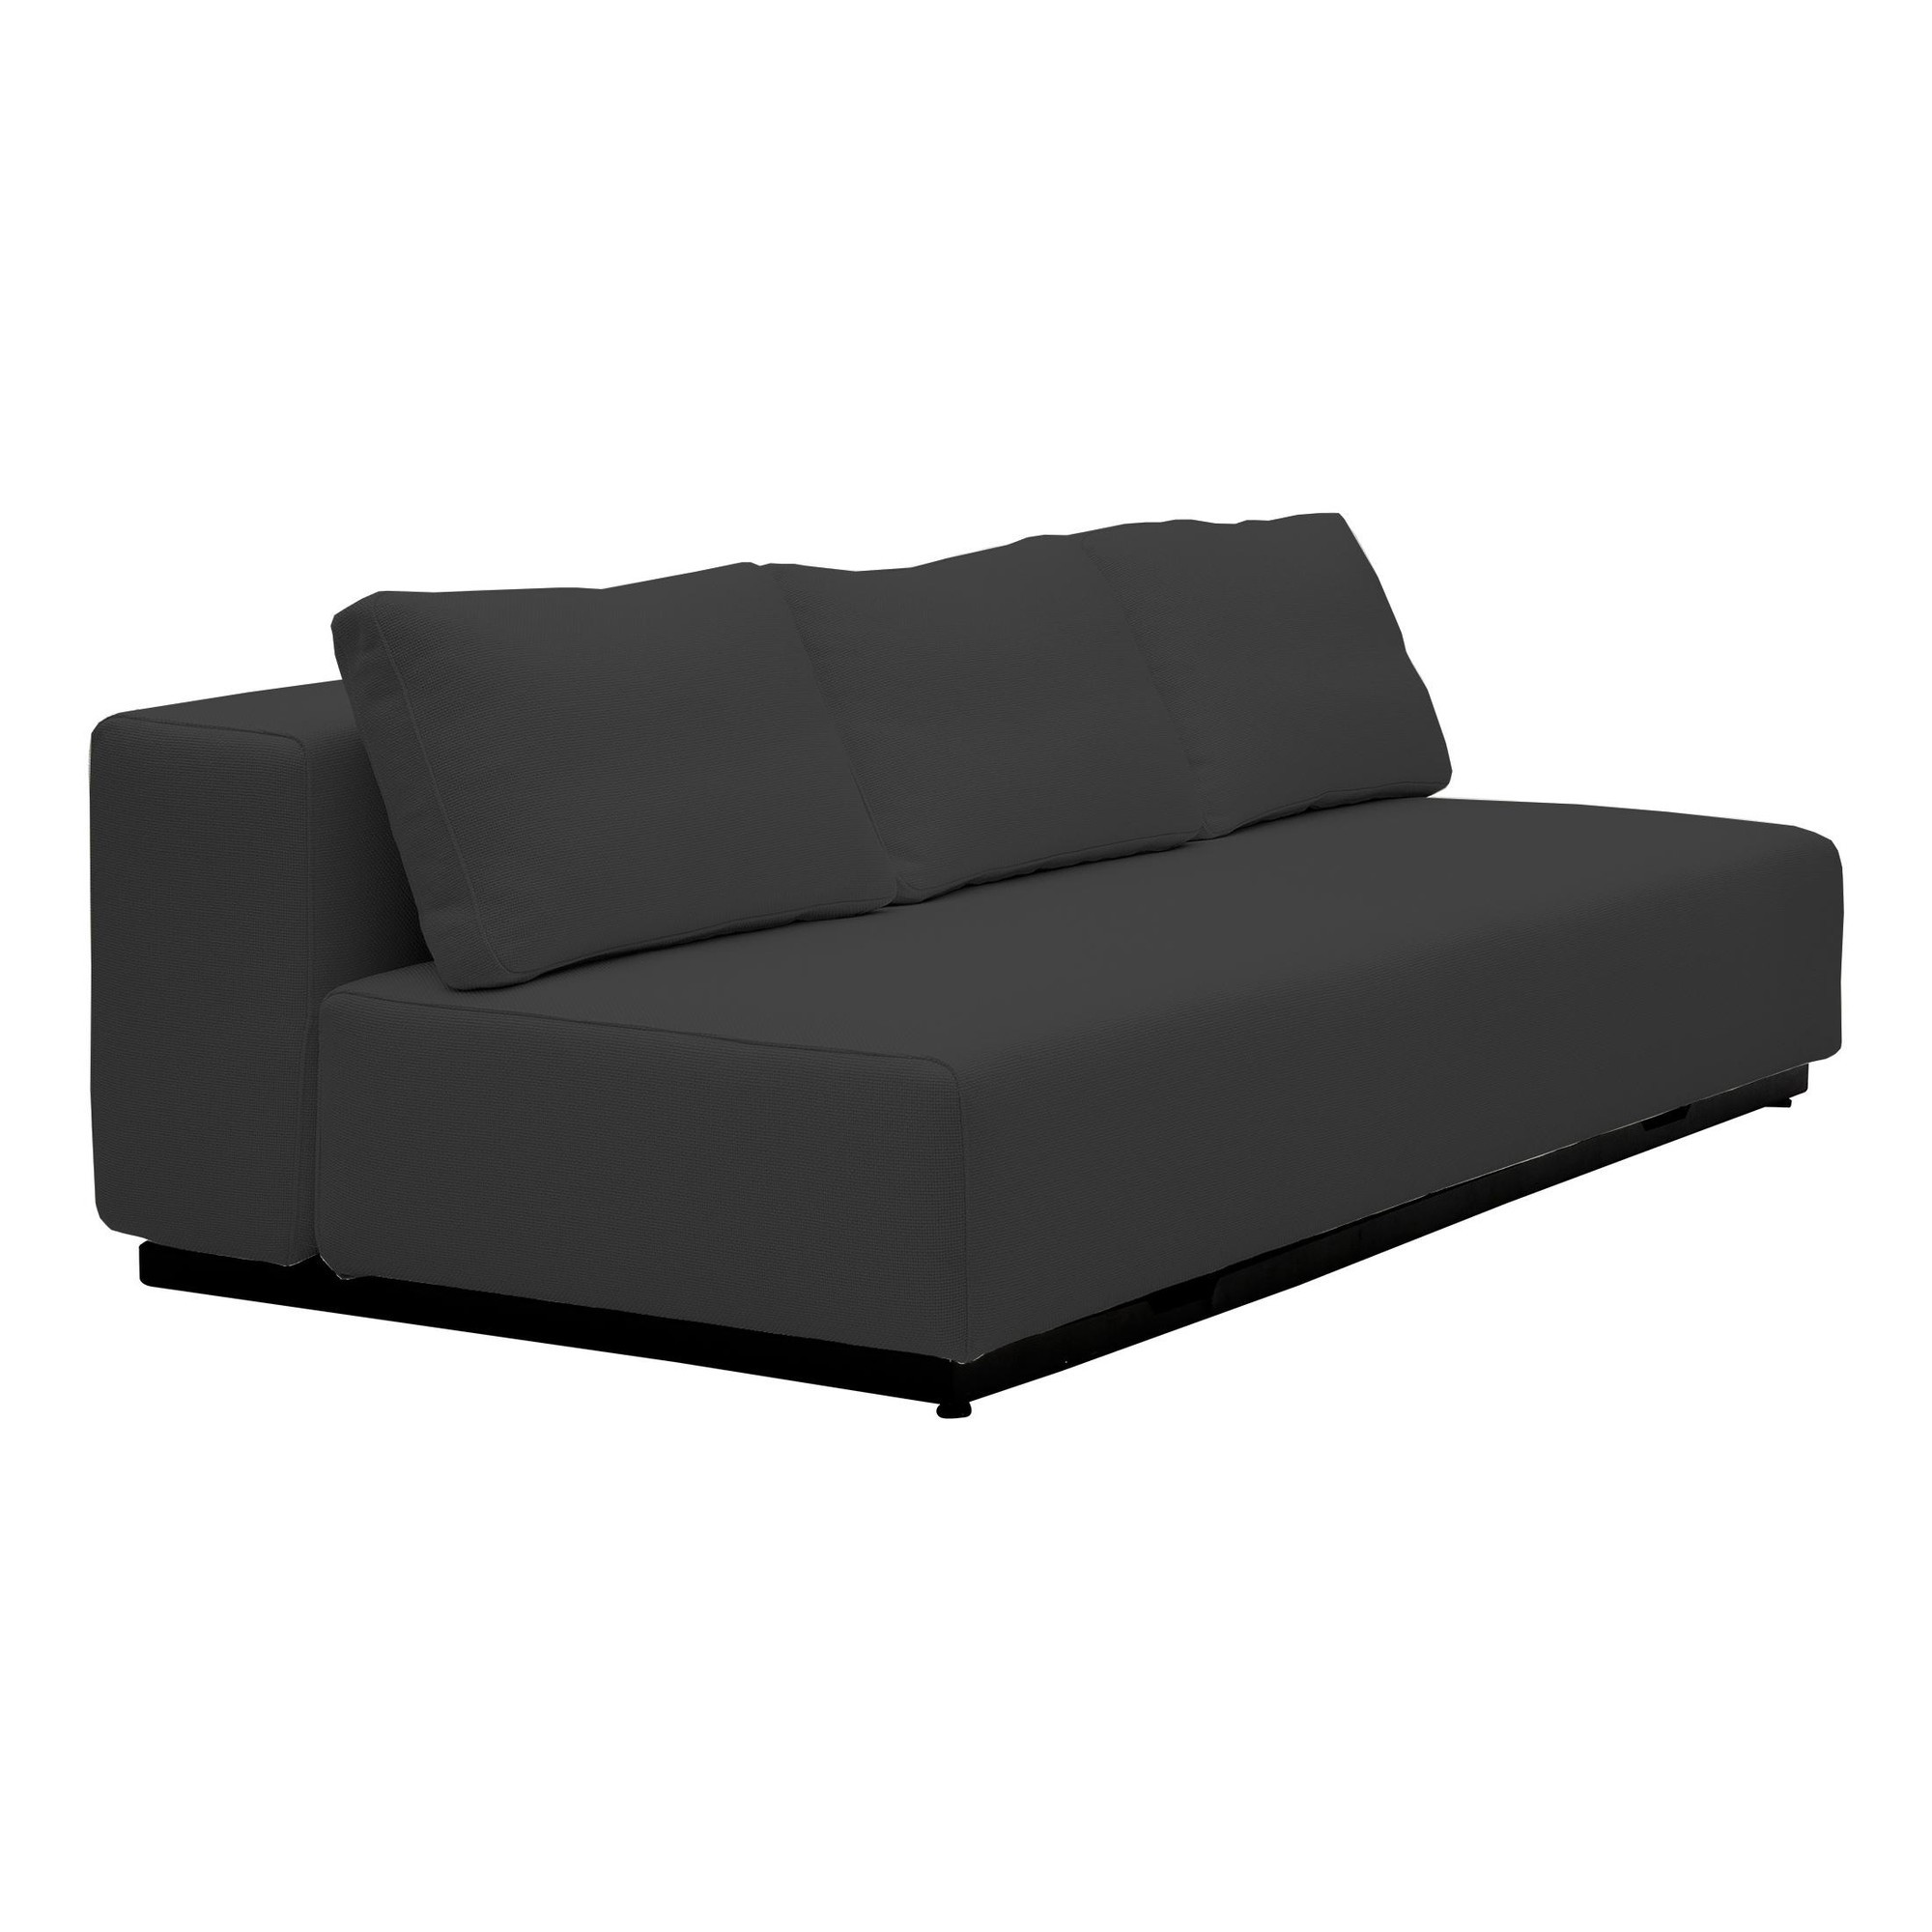 Softline Schlafsofa Nevada 3 P Sofa Bed